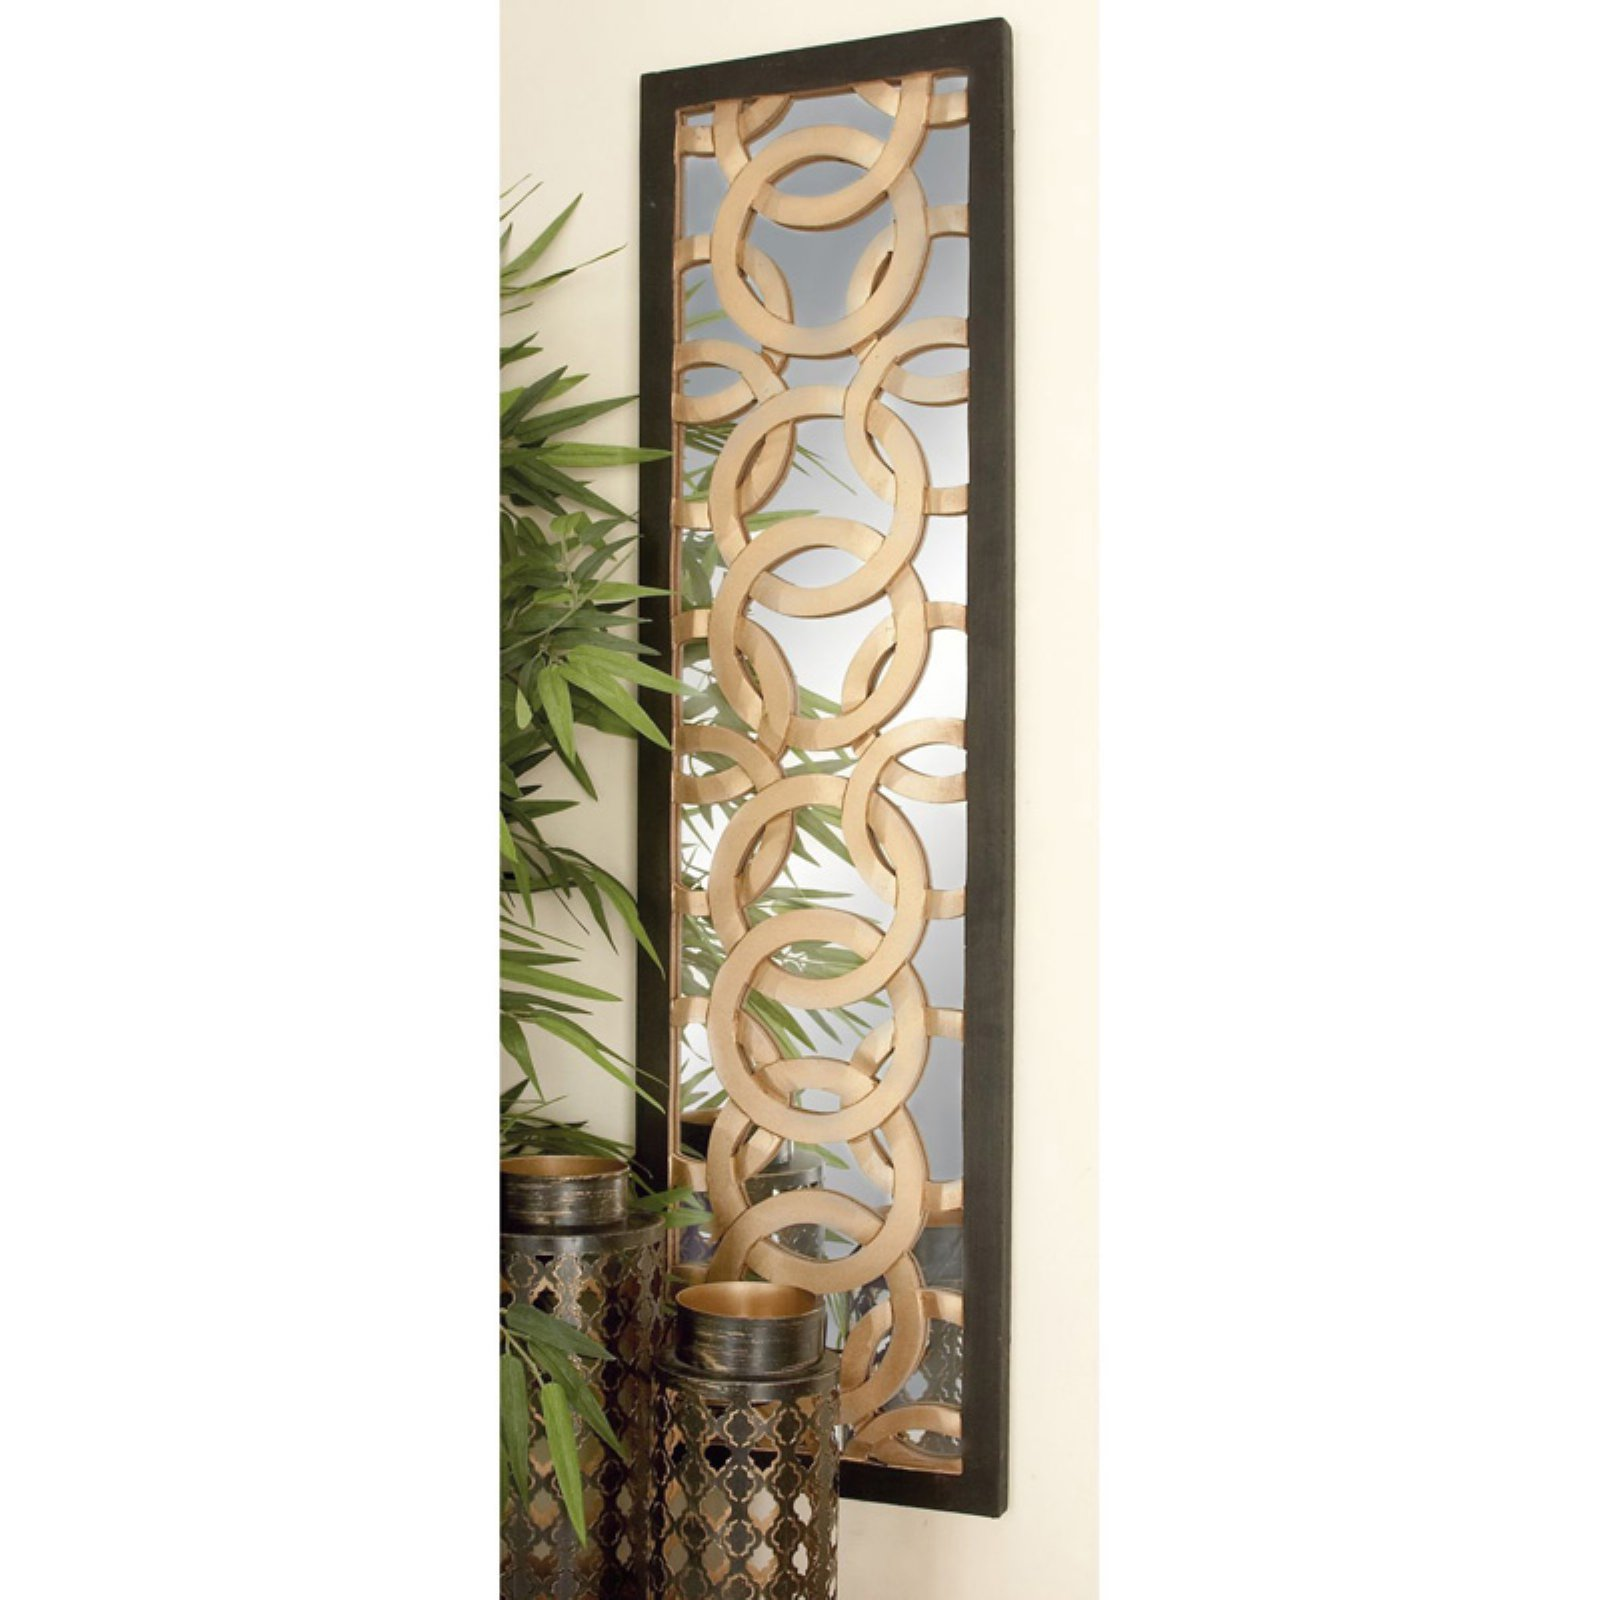 DecMode 12W x 44H in. (Each) Linked Circle Design Wood over Mirror Wall Panel - Set of 2